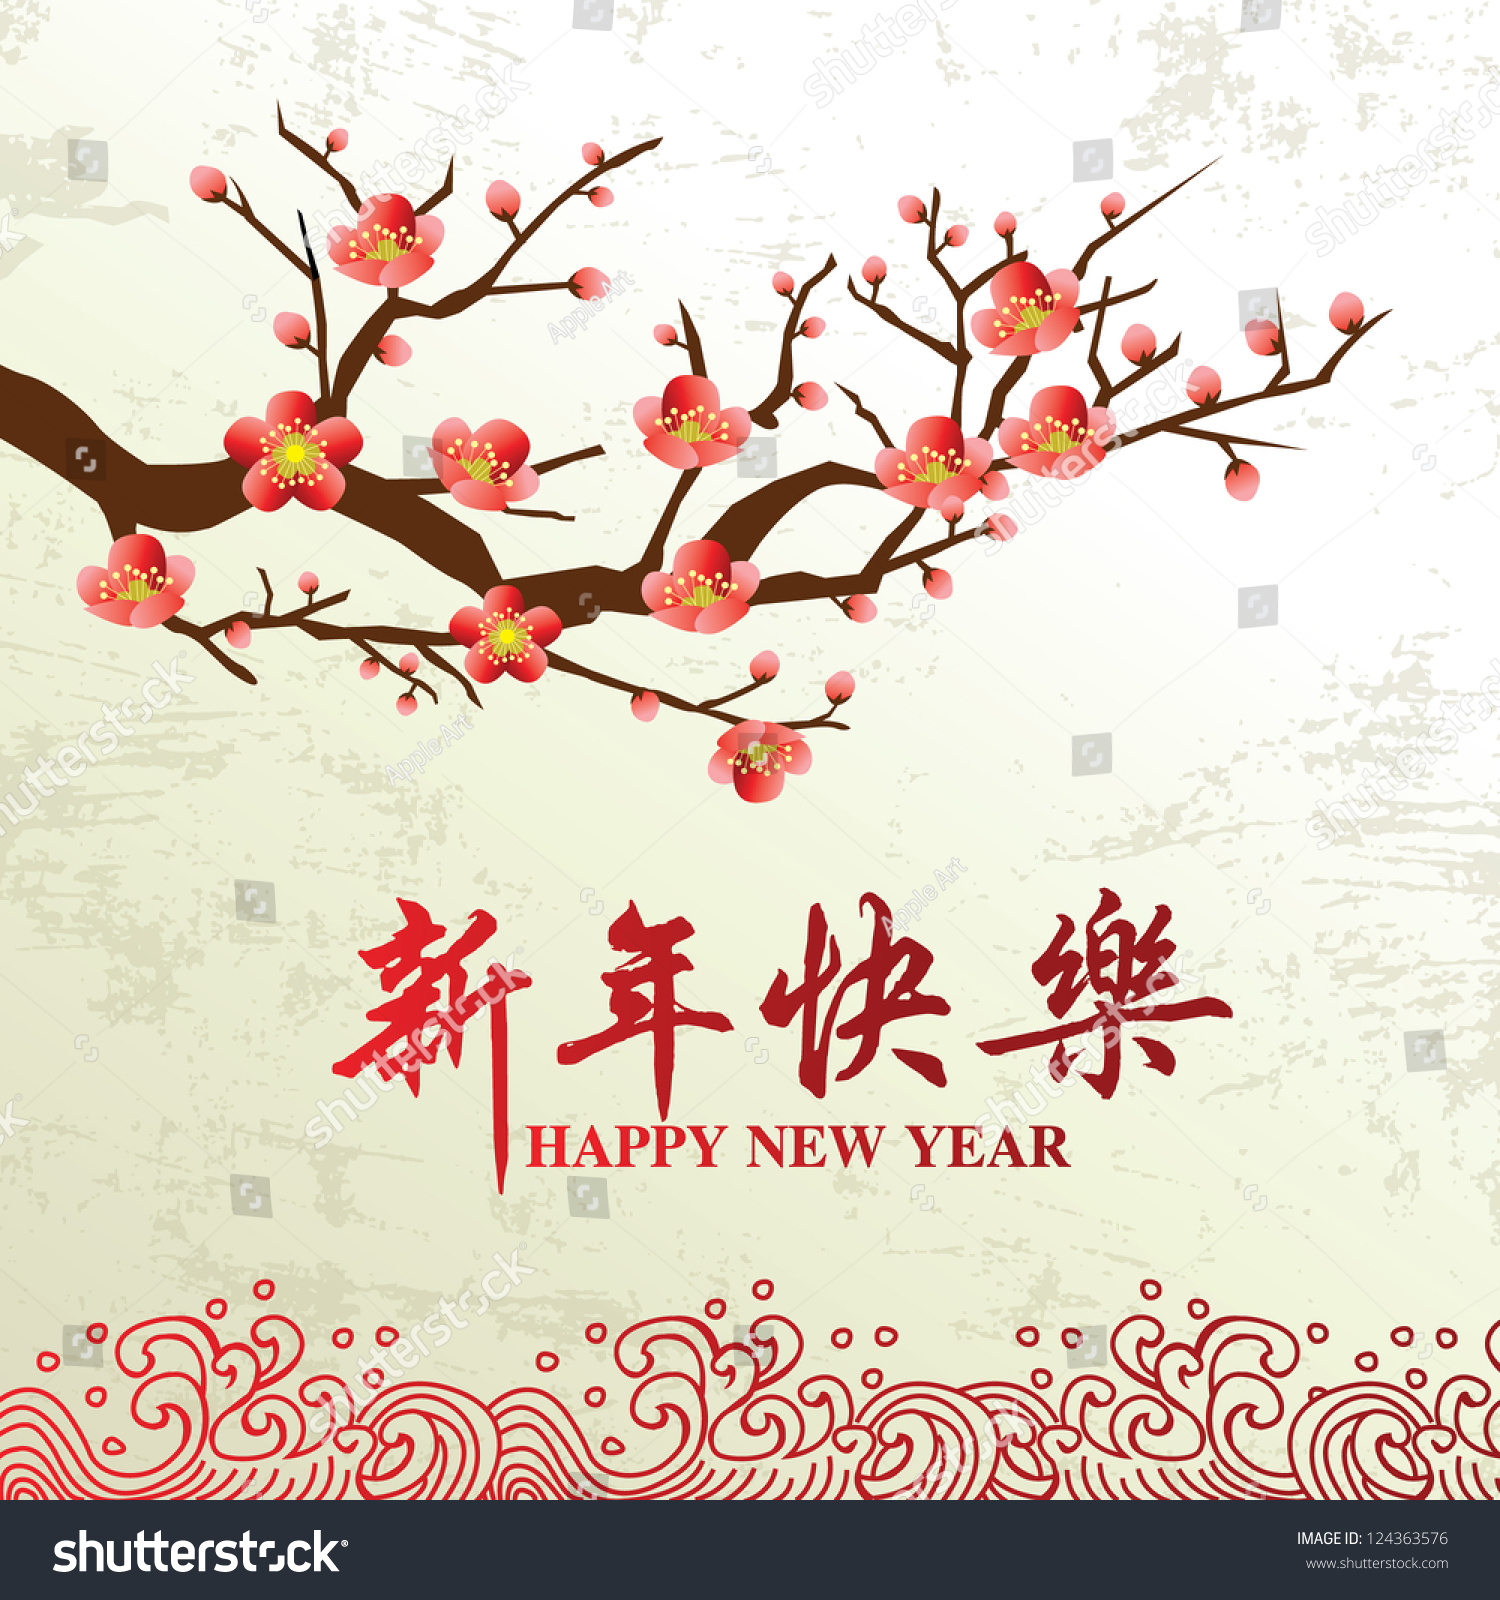 Cute Chinese New Year Wallpaper 2016 Chinese New Year Card Plum Blossom Stock Vector 124363576